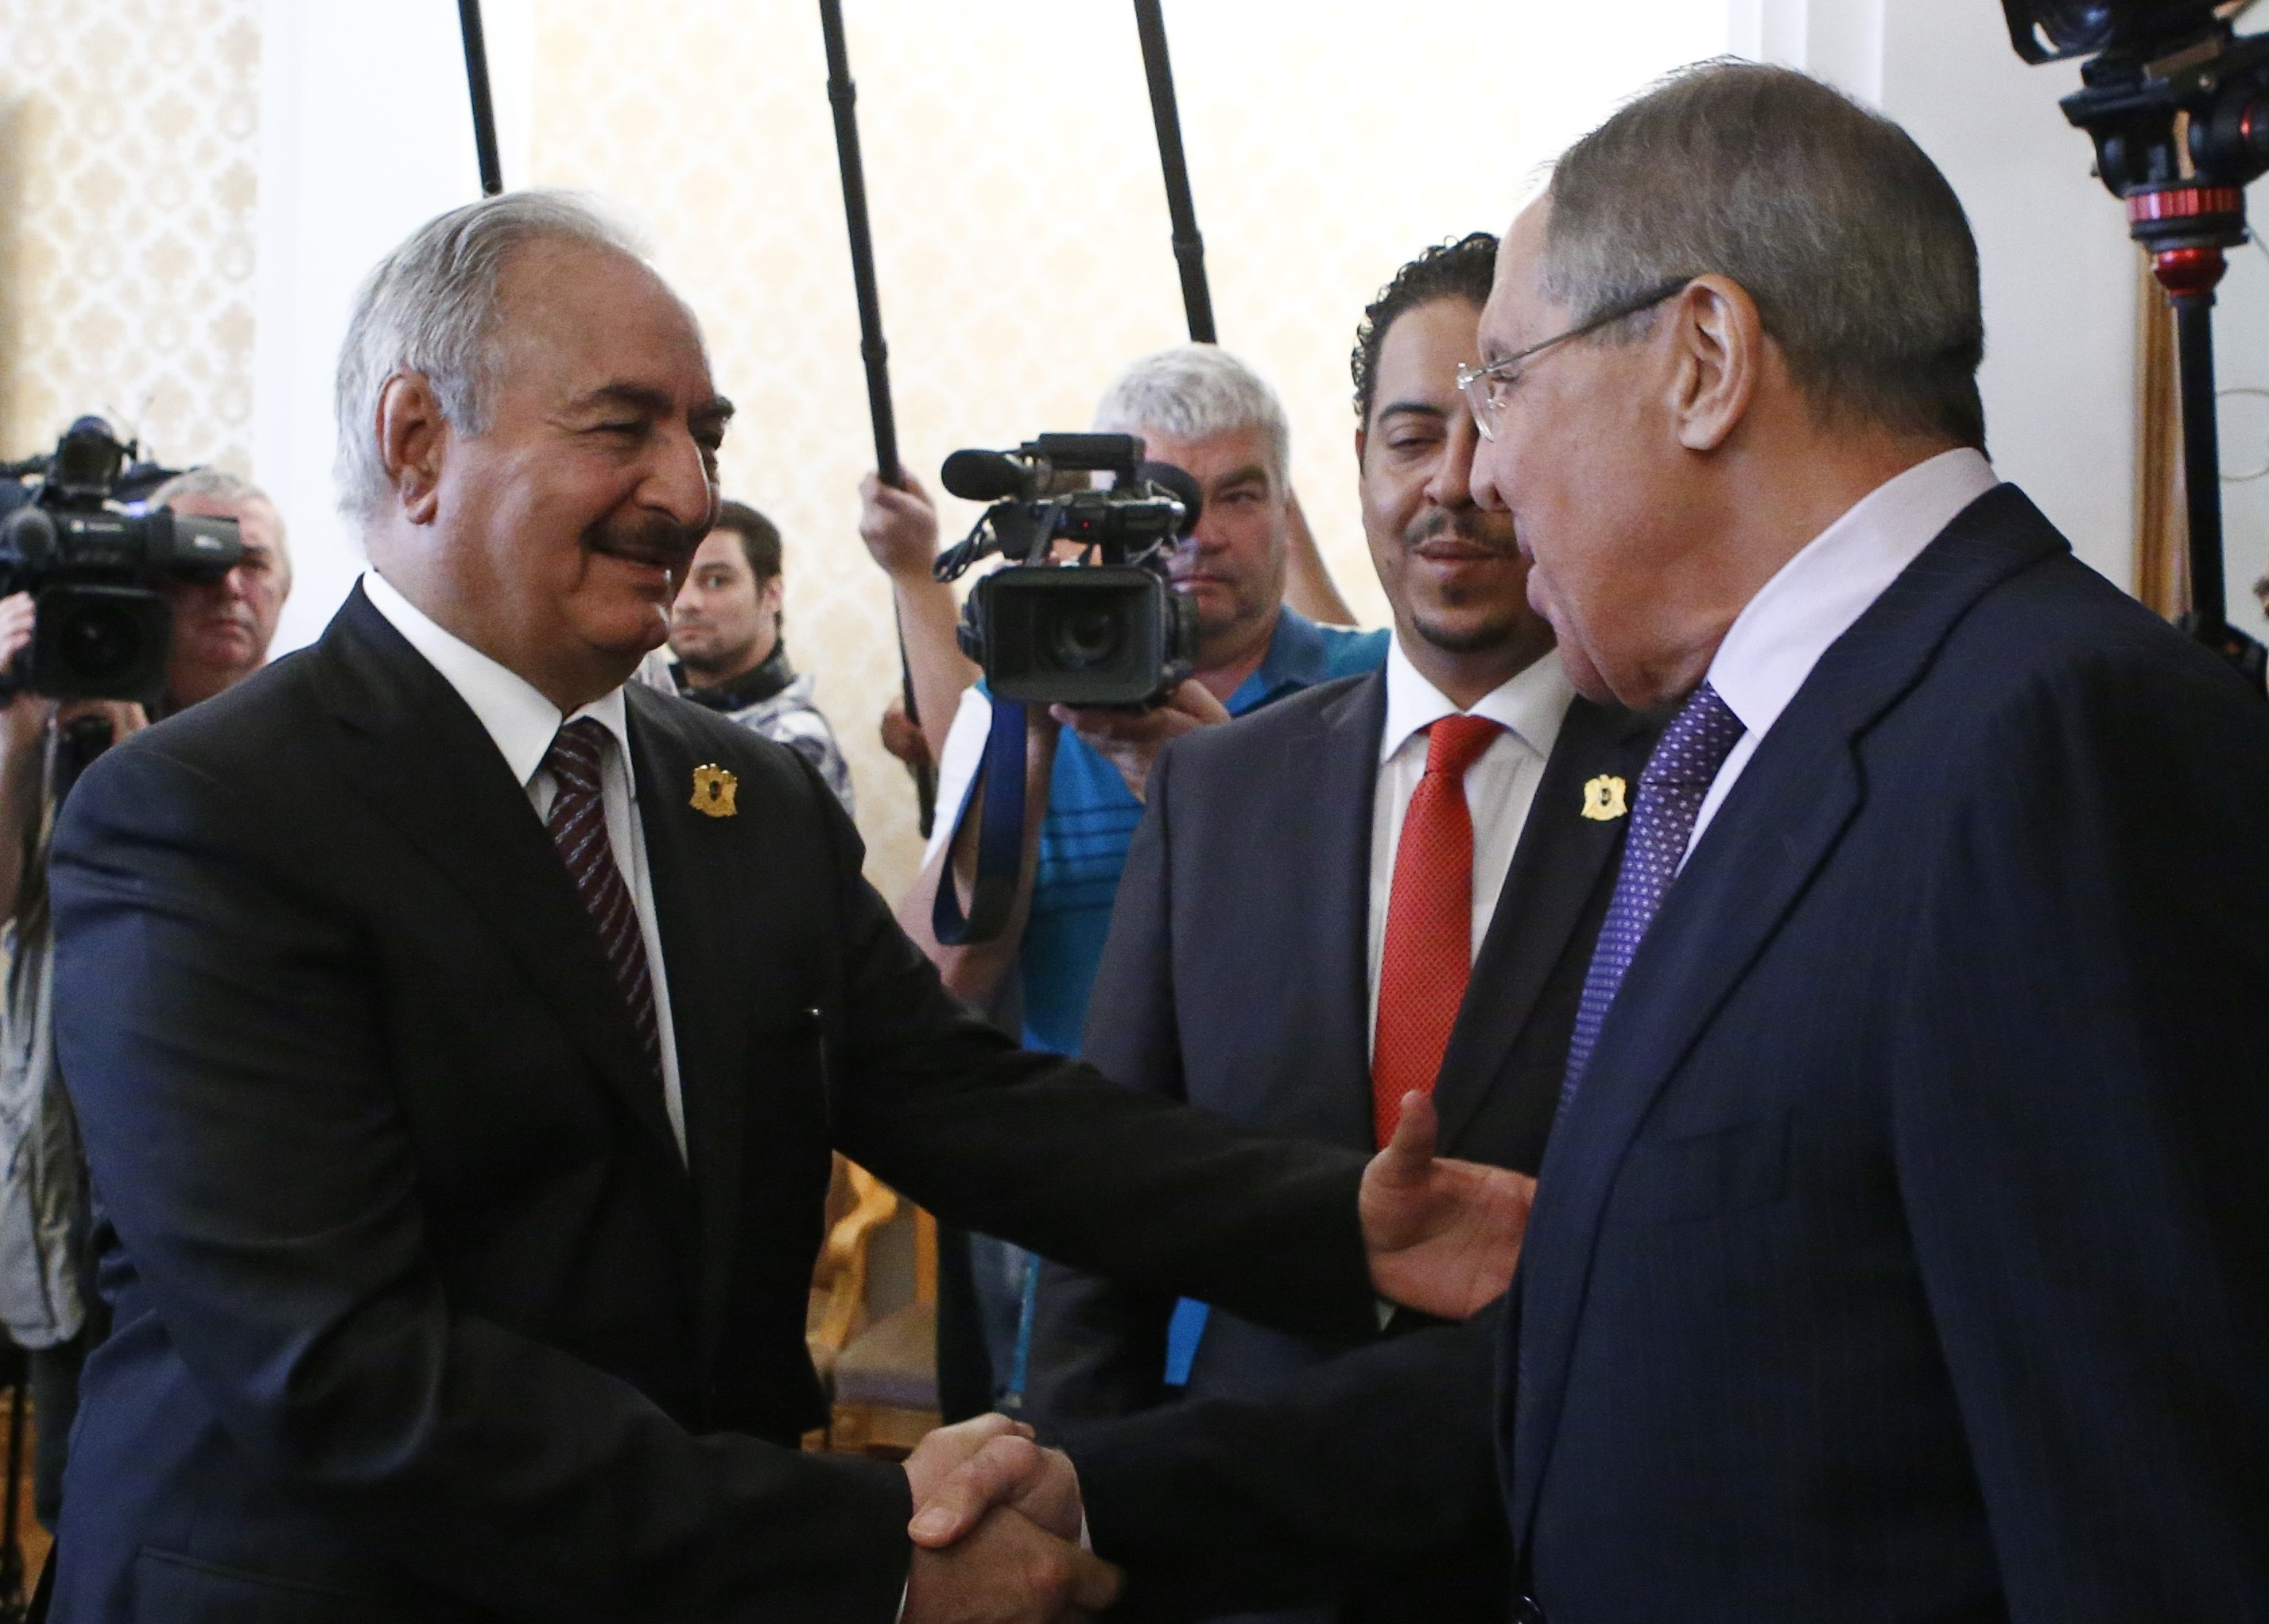 General Khalifa Haftar (L), commander in the Libyan National Army (LNA), shakes hands with Russian Foreign Minister Sergei Lavrov during a meeting in Moscow, Russia  on 14 August, 2017 (Reuters)